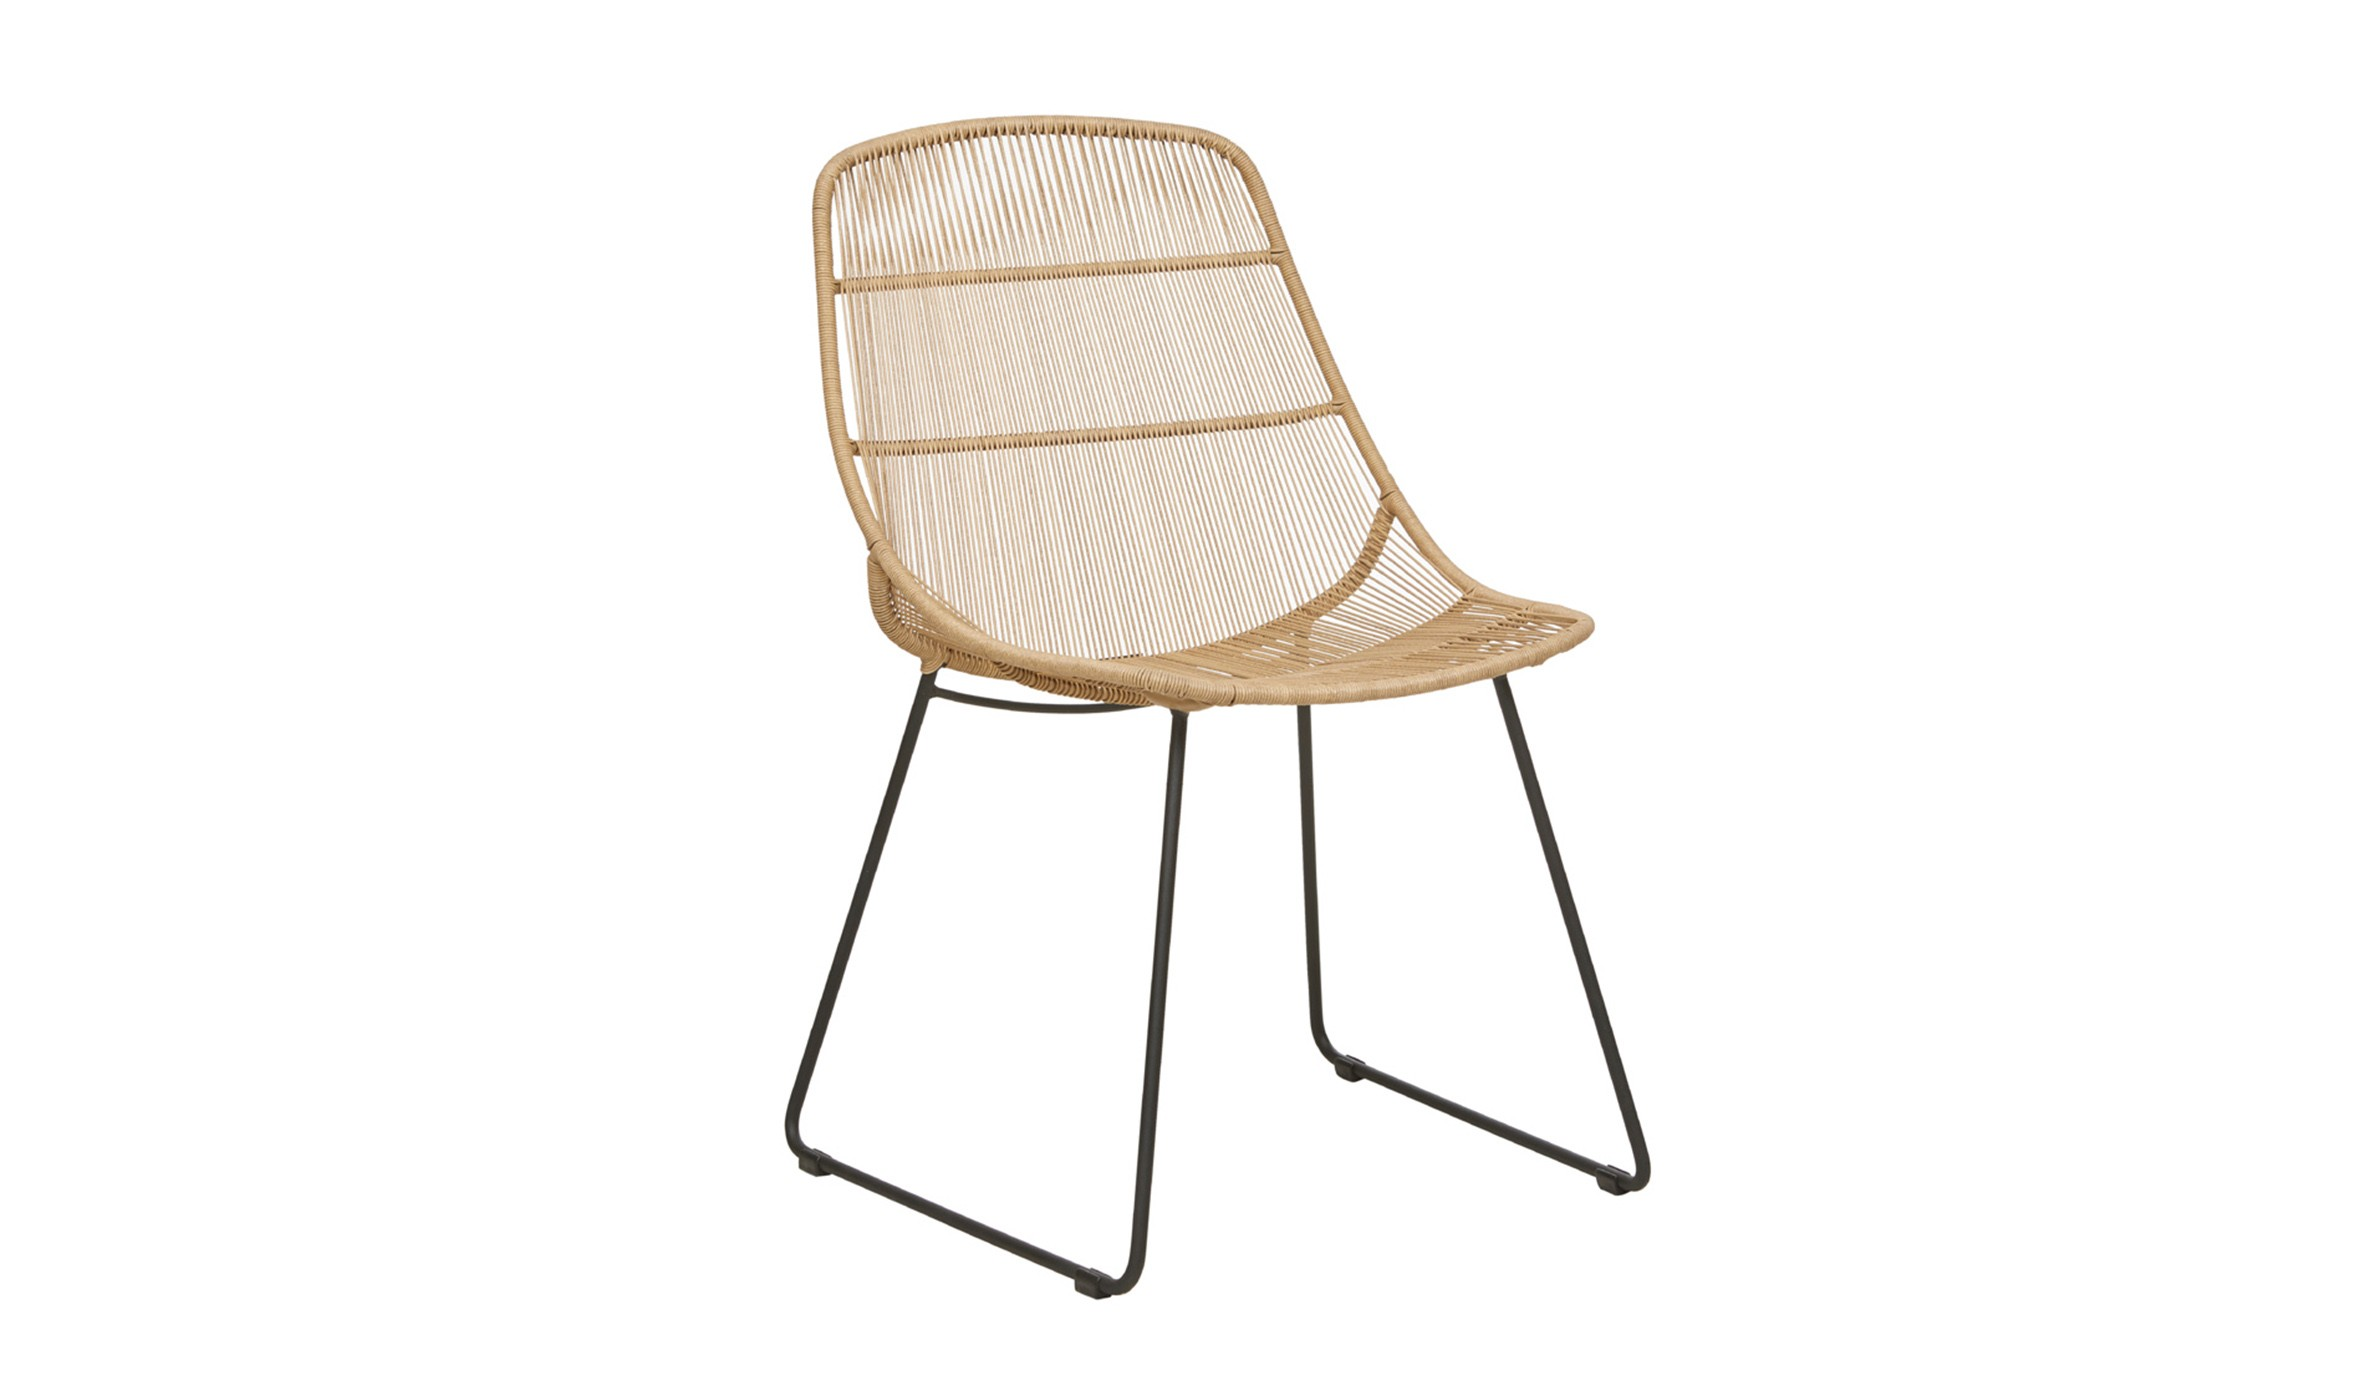 Furniture Thumbnails outdoor-dining-chairs-benches-and-stools-granada-scoop-100